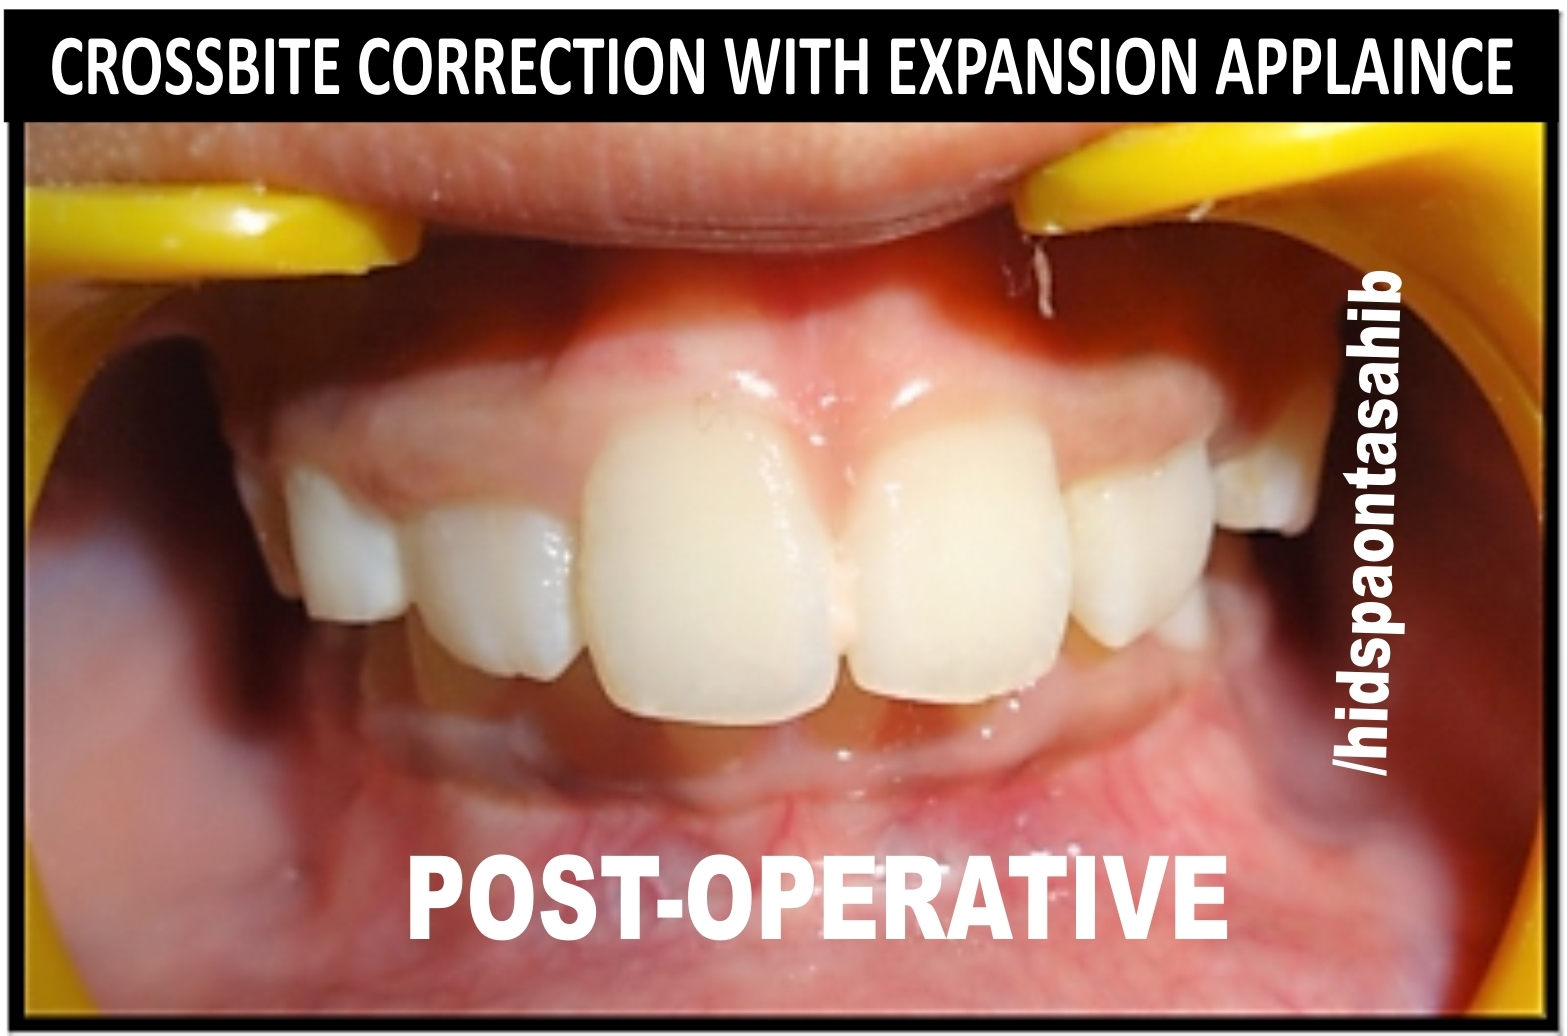 CROSSBITE CORRECTION WITH EXPANSION